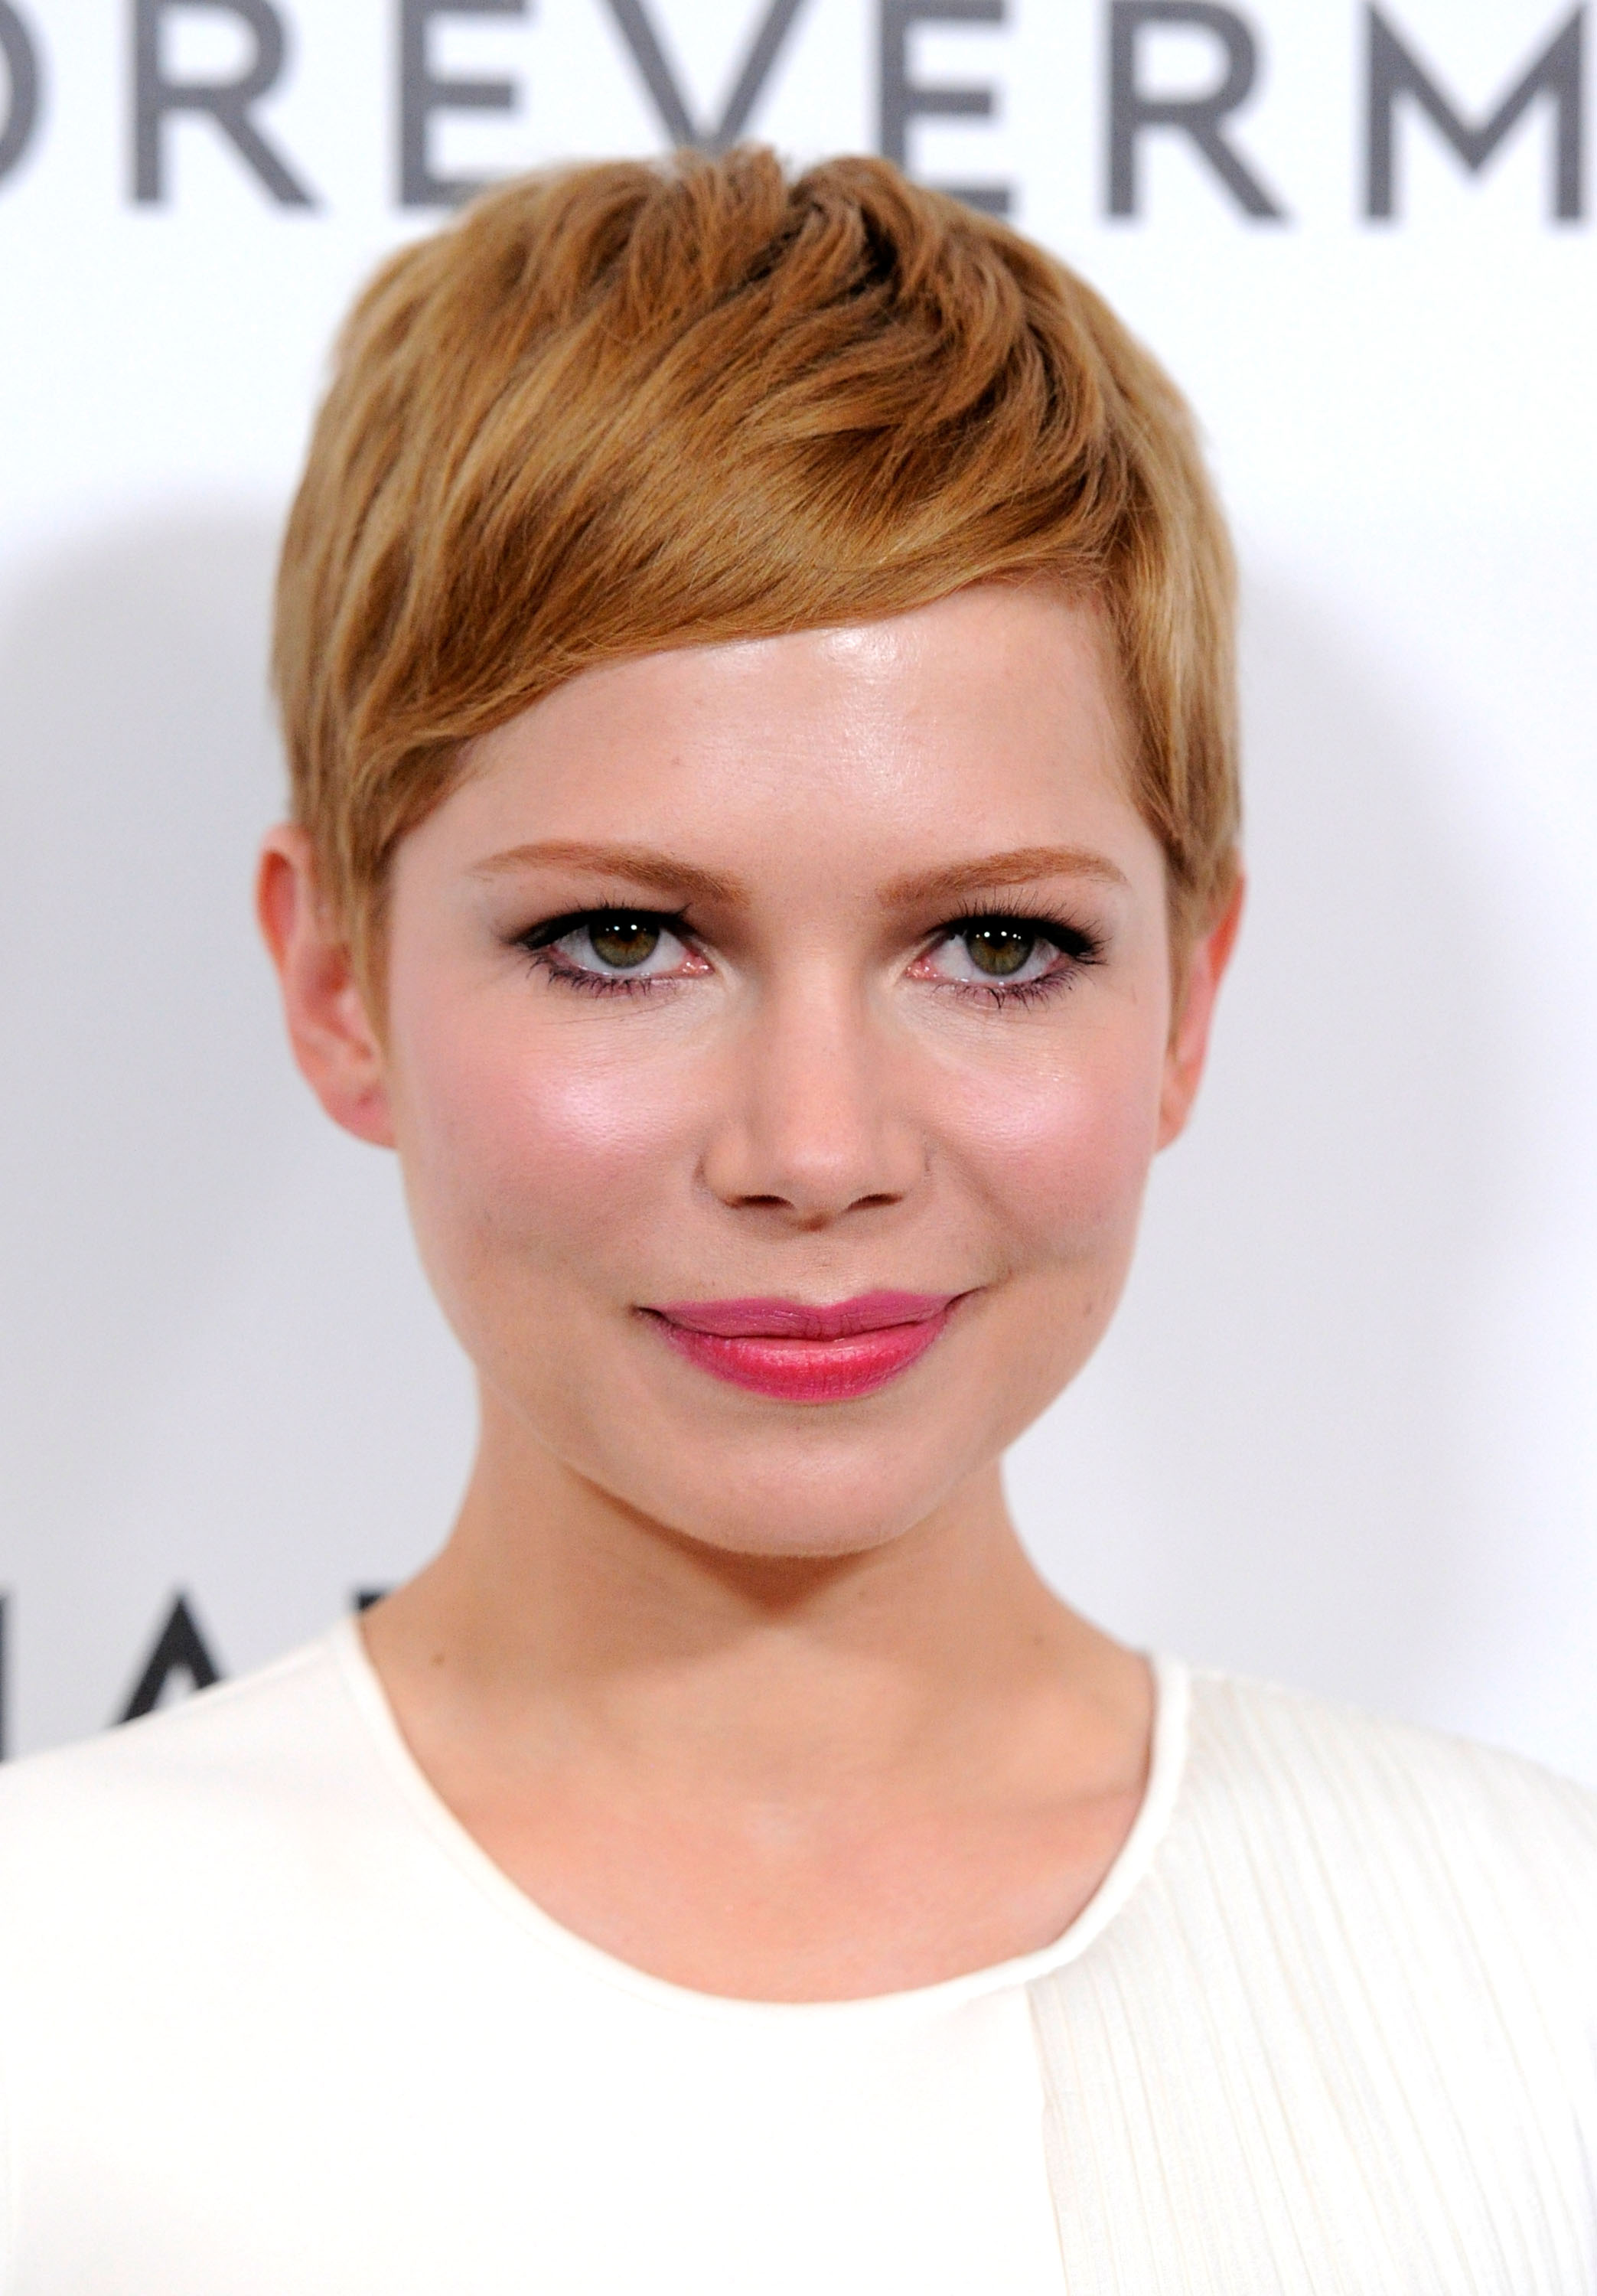 Sensational 34 Pixie Hairstyles And Cuts Celebrities With Pixies Short Hairstyles Gunalazisus